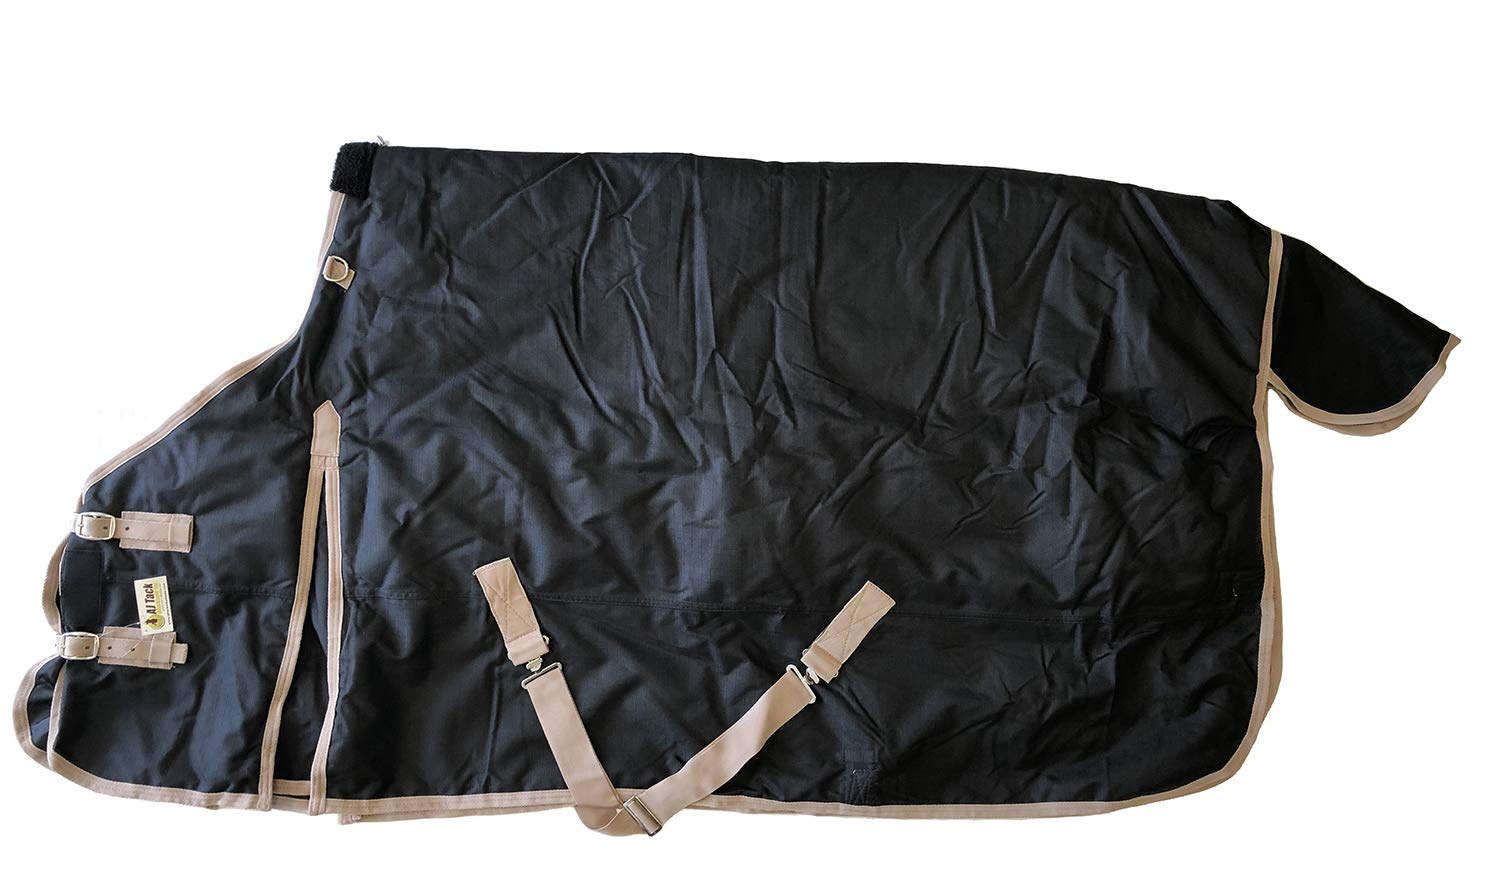 Heavy Weight Horse Turnout Blanket 1200D Rip Stop Water Proof Black 72 by AJ Tack Wholesale